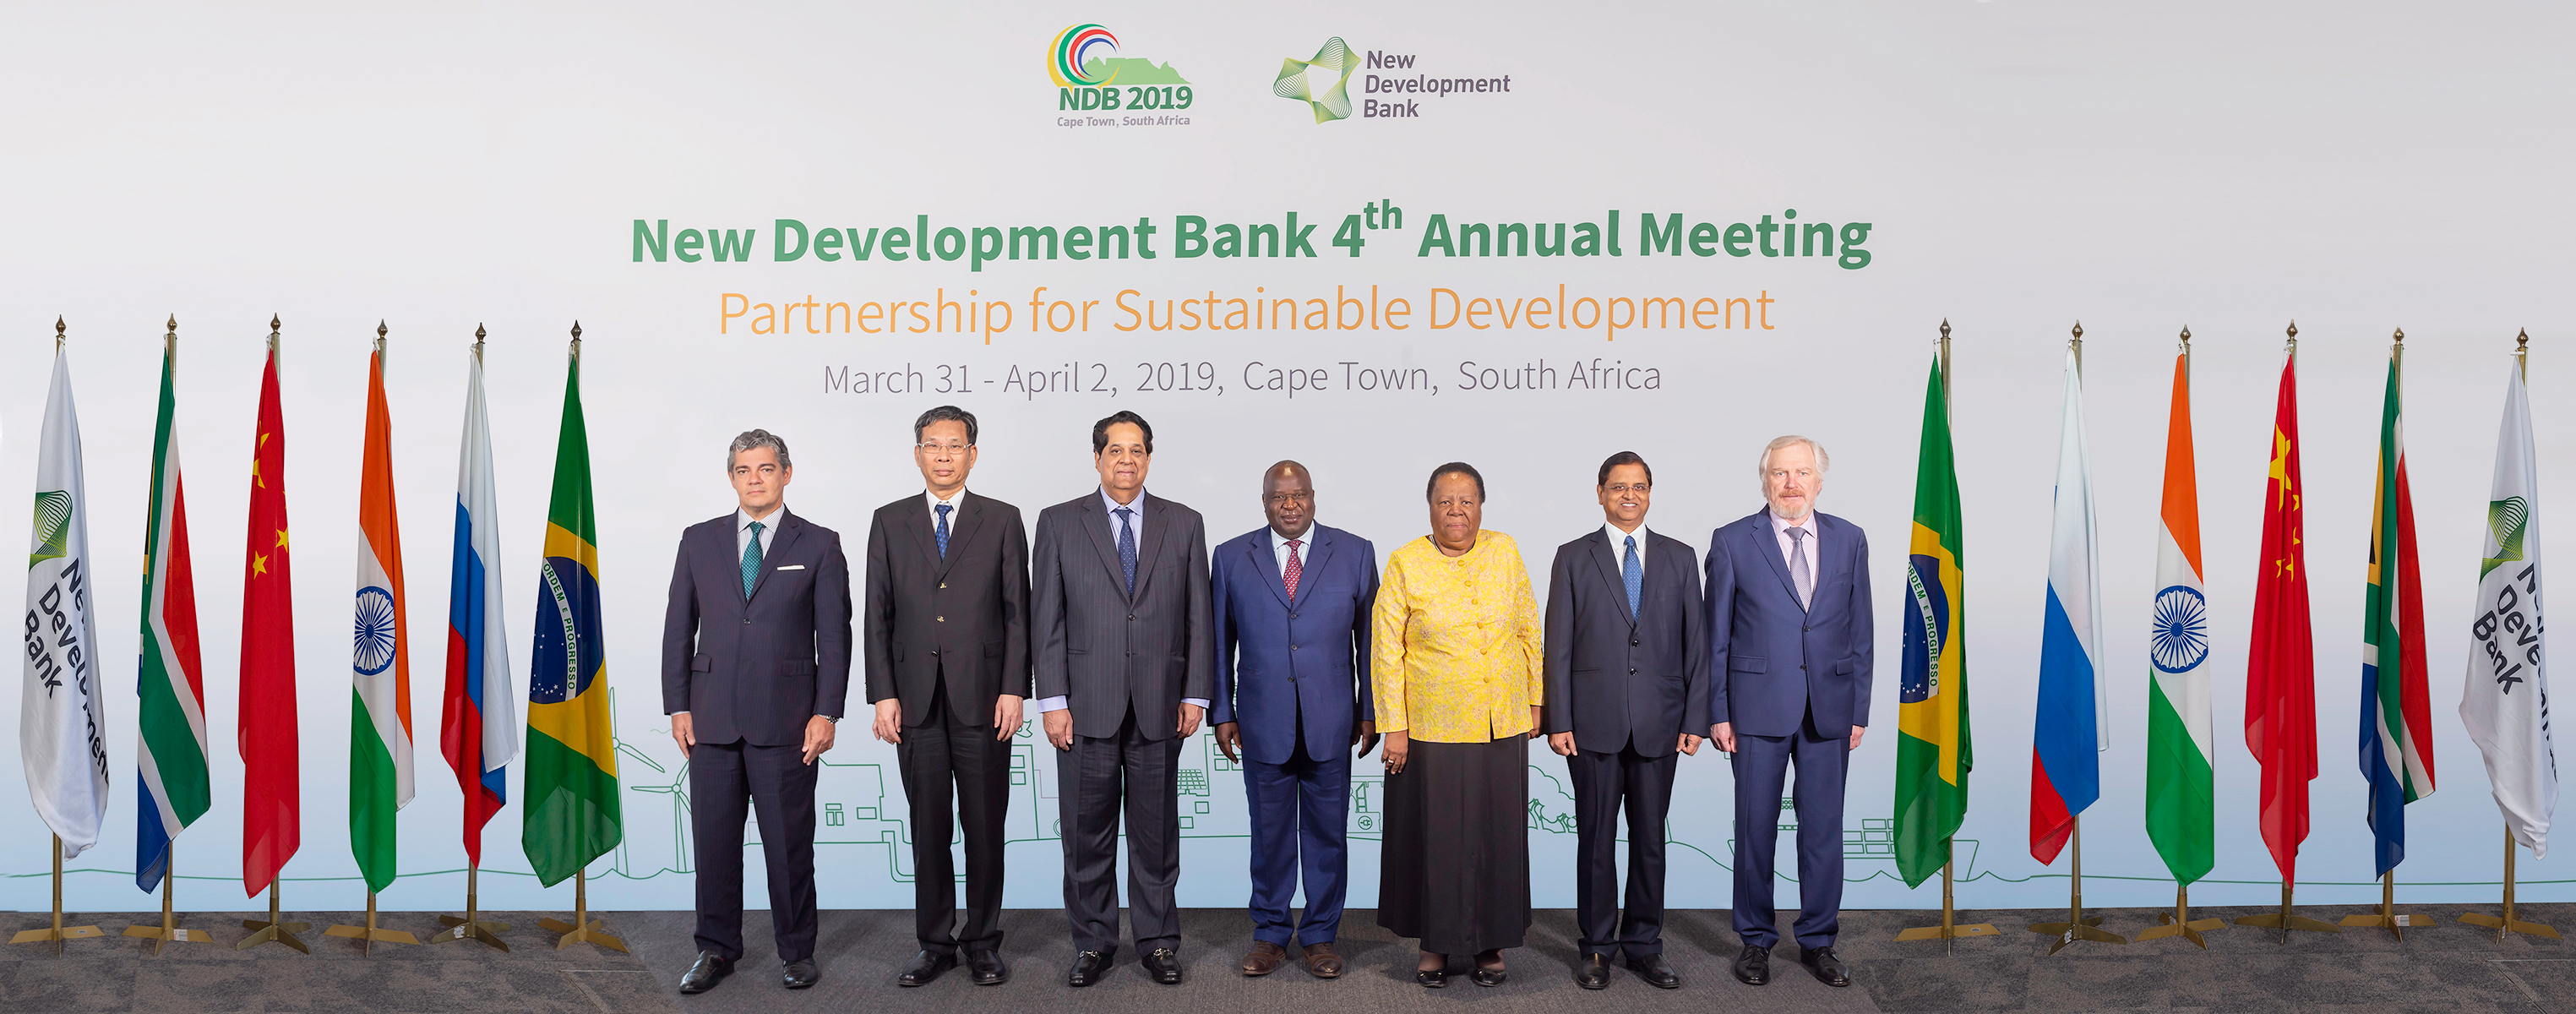 New Development Bank (NDB) Outlines Ambitious Plans to Boost.